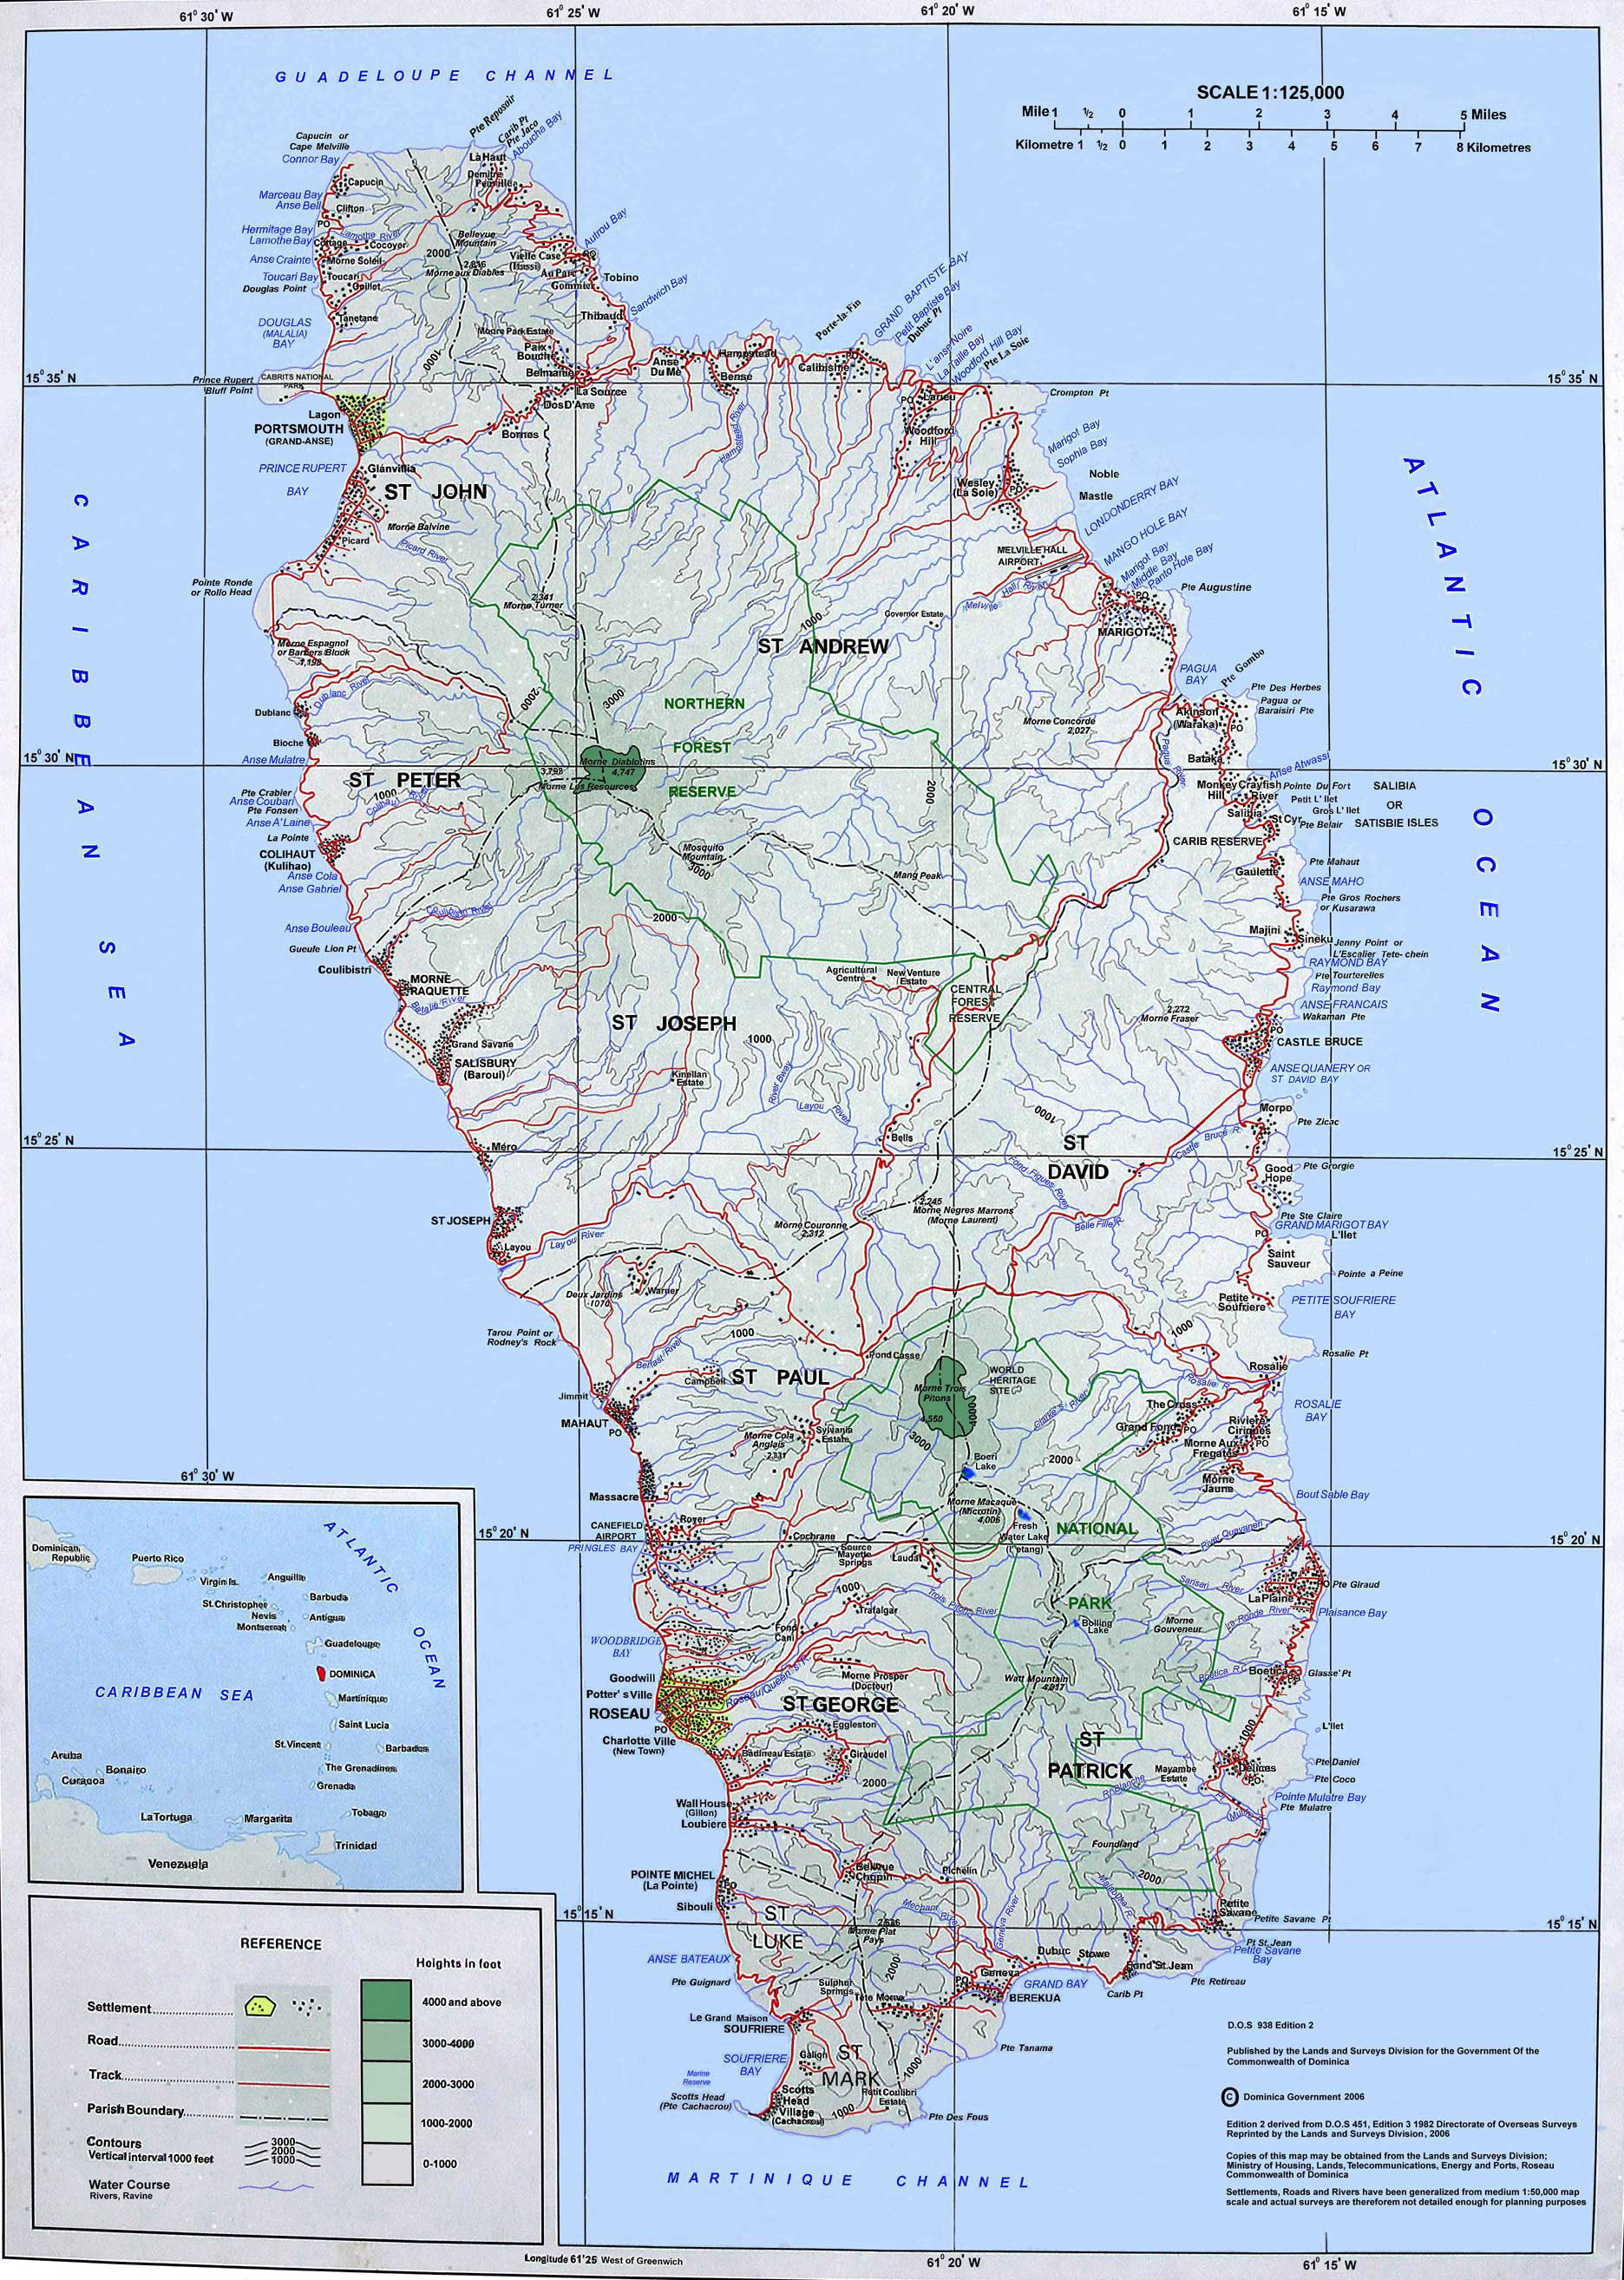 Large Detailed Topographical Map Of Dominica Island Dominica - Map of dominica caribbean sea